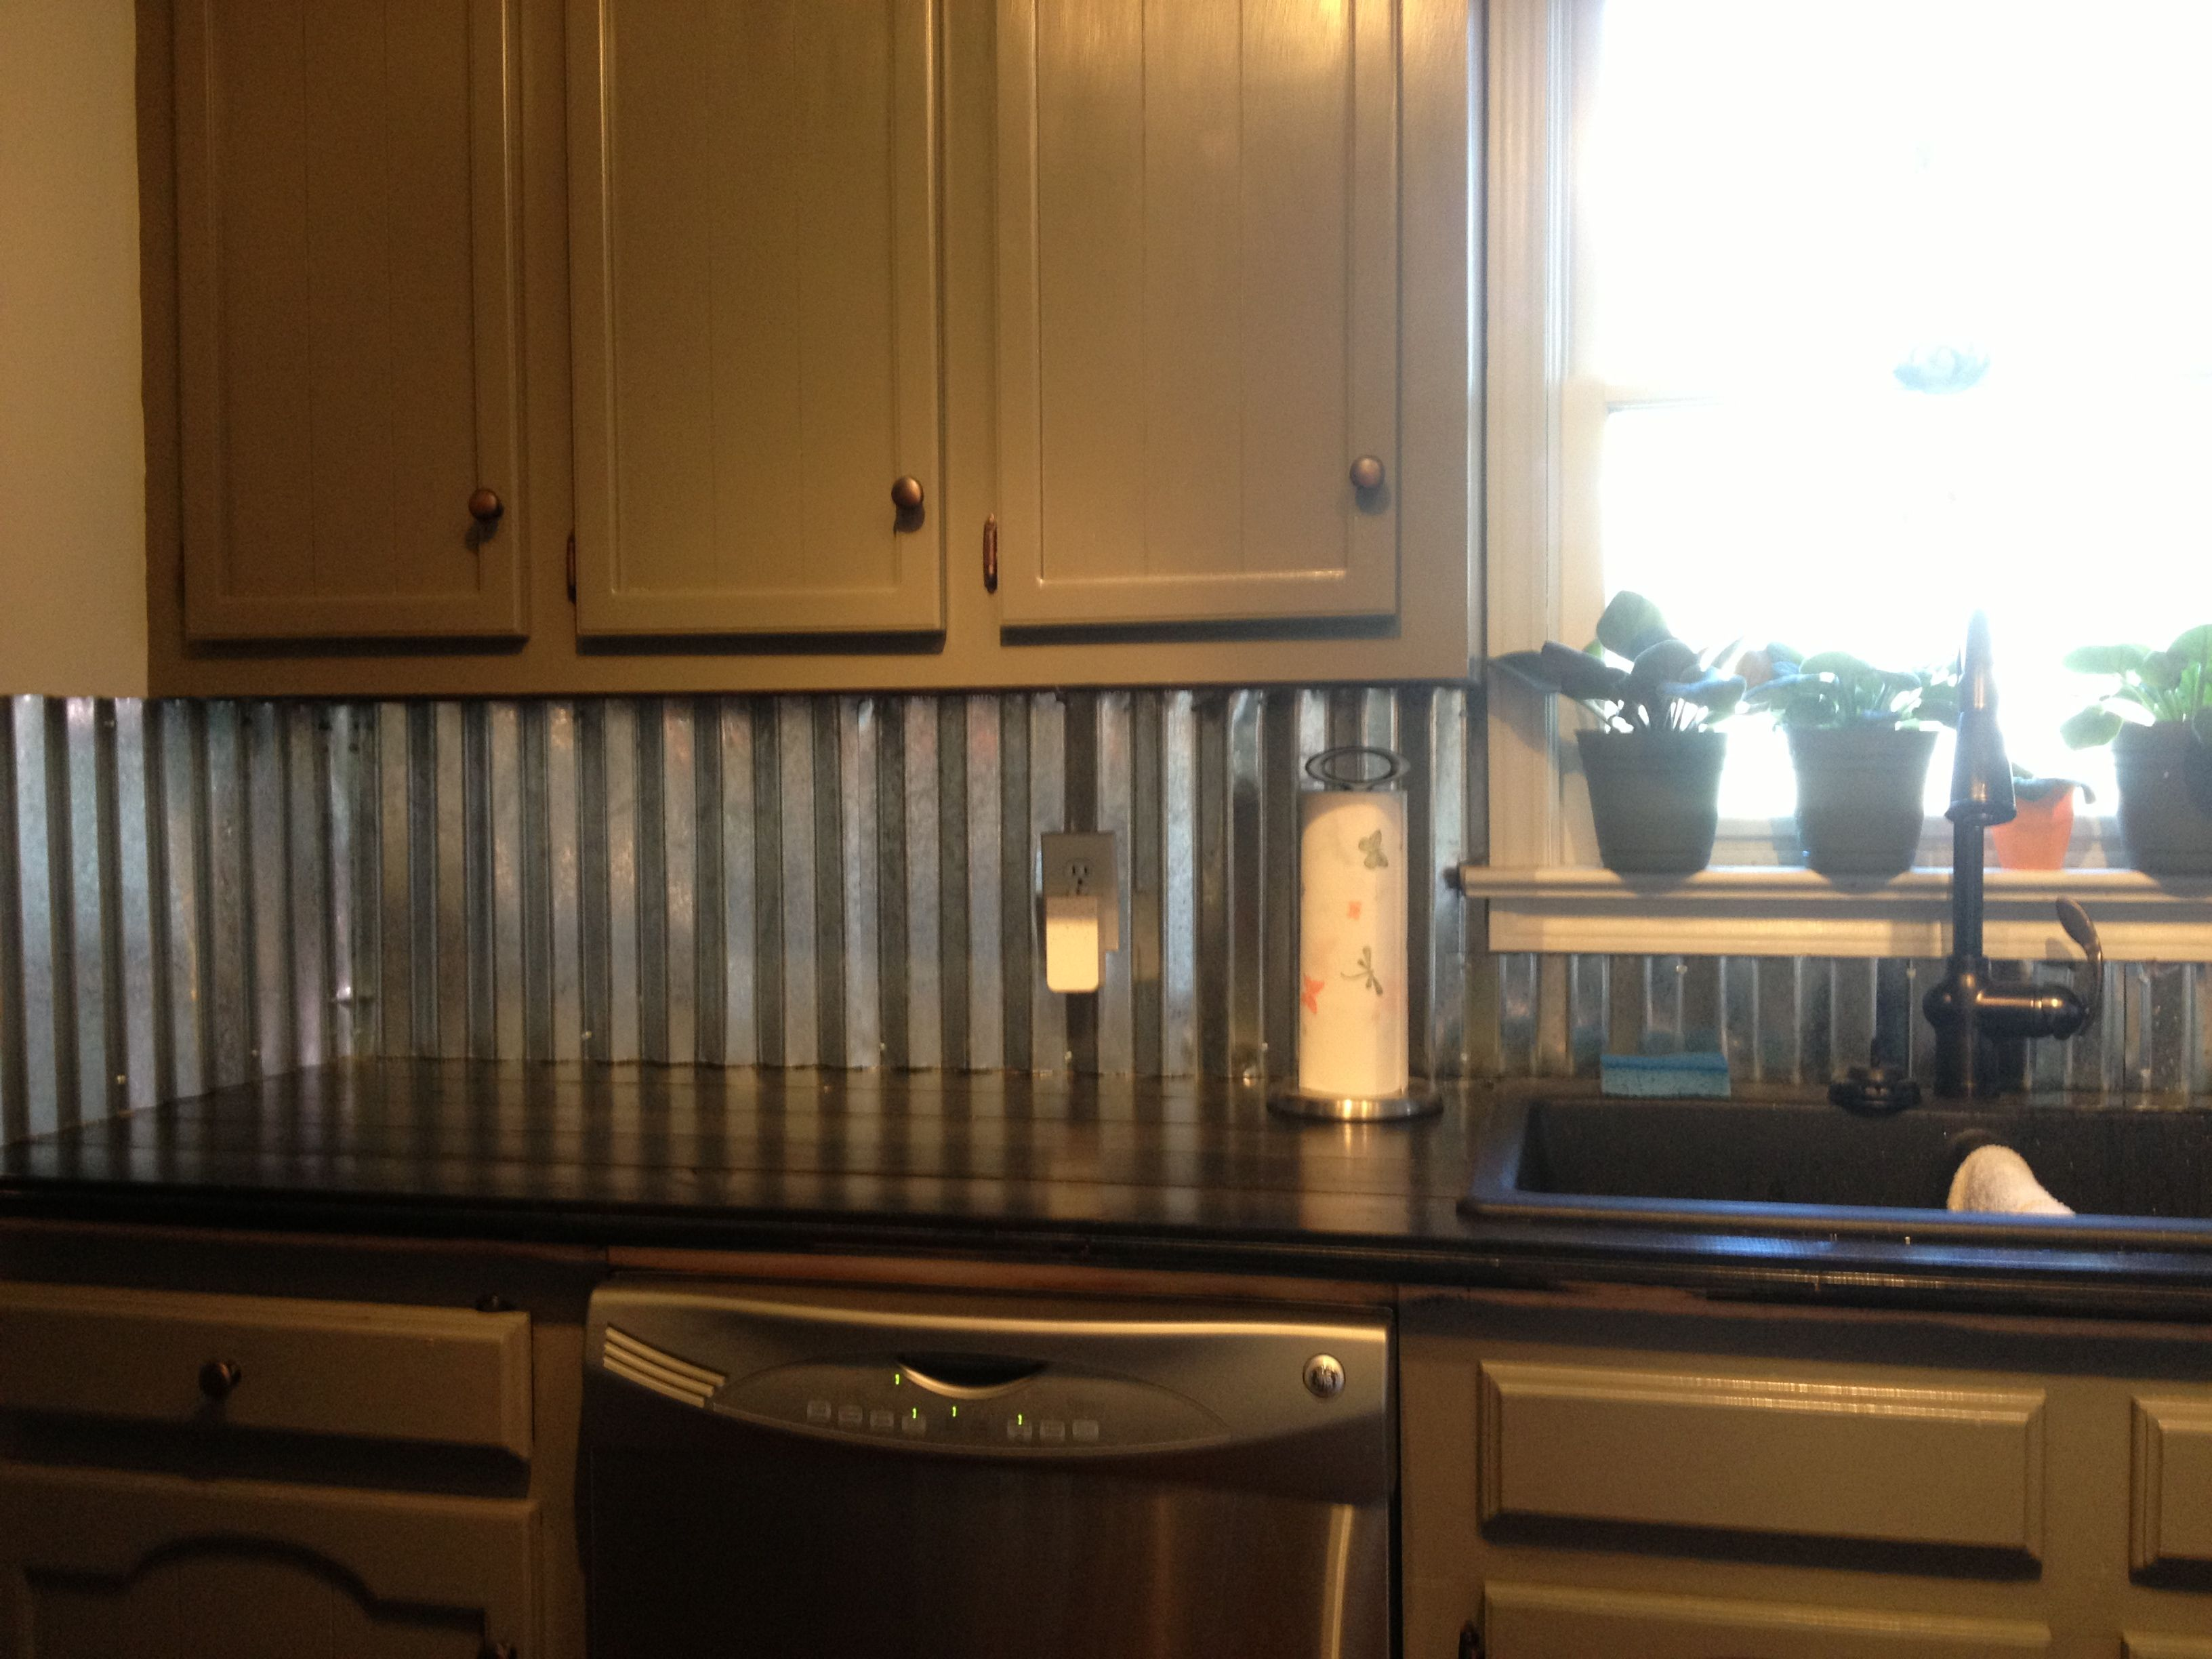 Corrugated Metal Backsplash For The Basement Bar